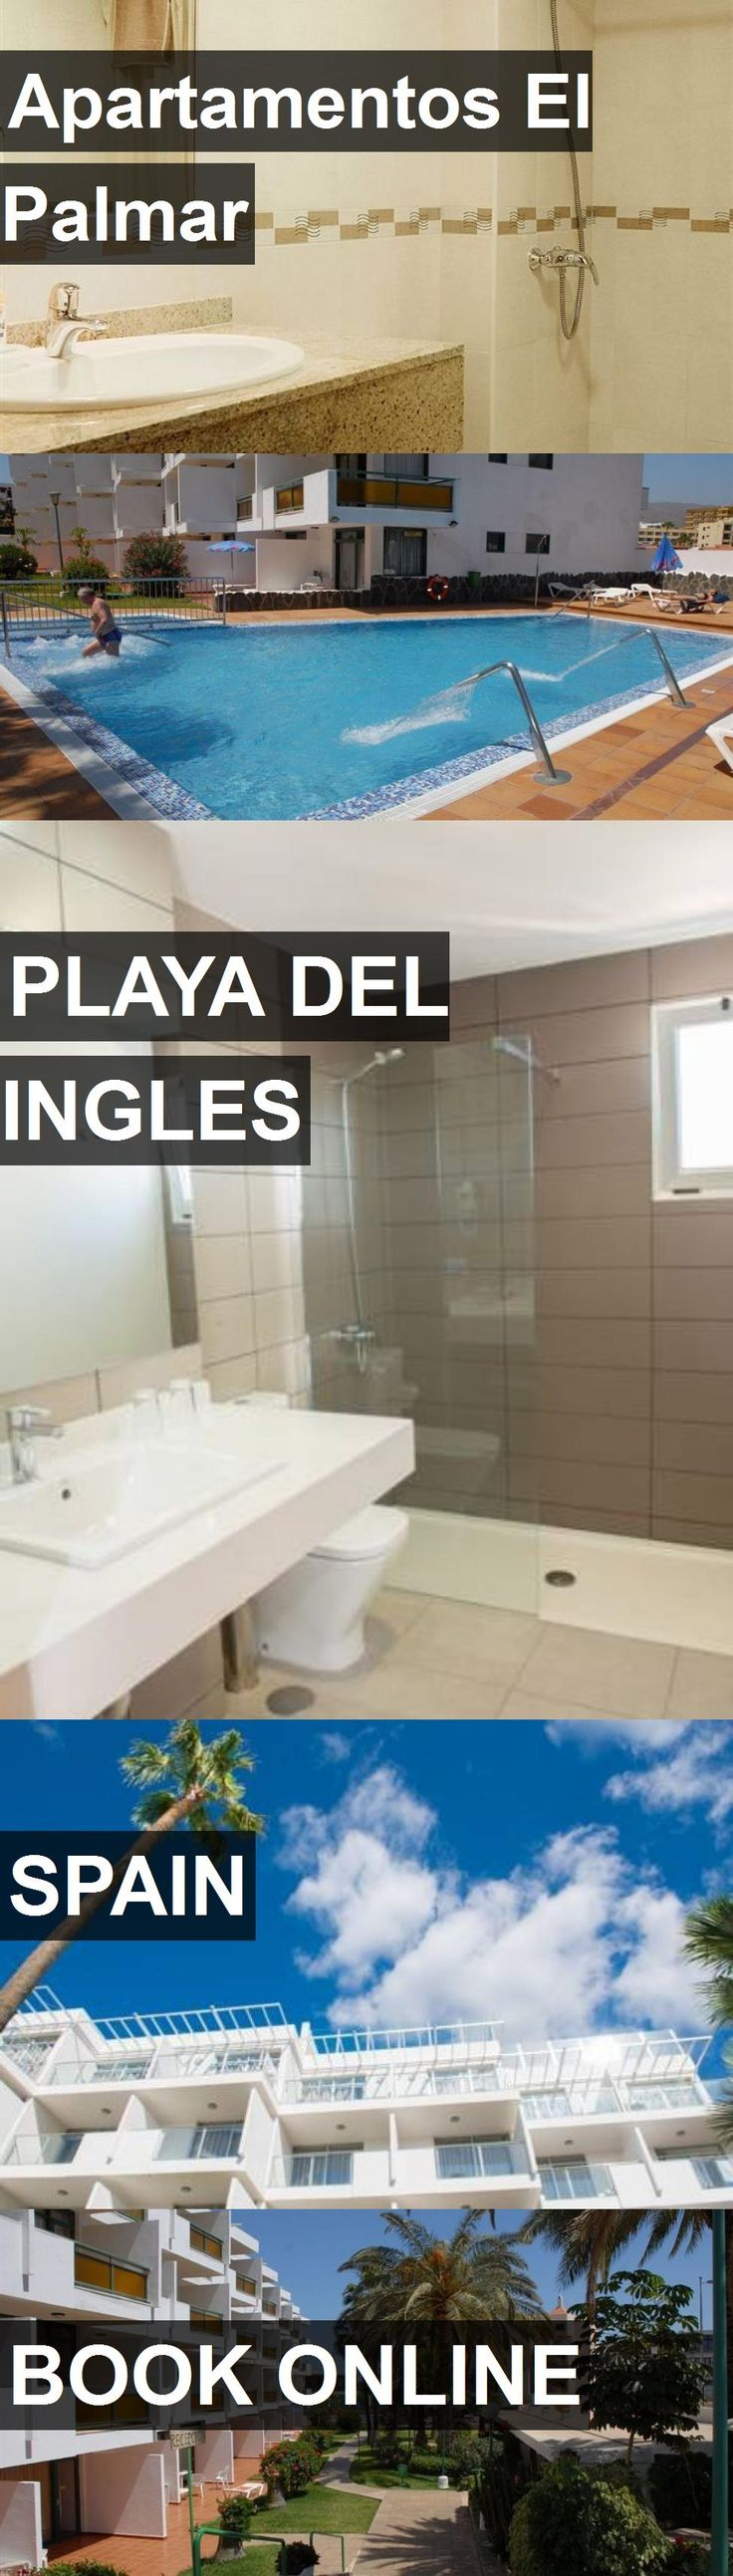 Hotel Apartamentos El Palmar in Playa del Ingles, Spain. For more information, photos, reviews and best prices please follow the link. #Spain #PlayadelIngles #travel #vacation #hotel